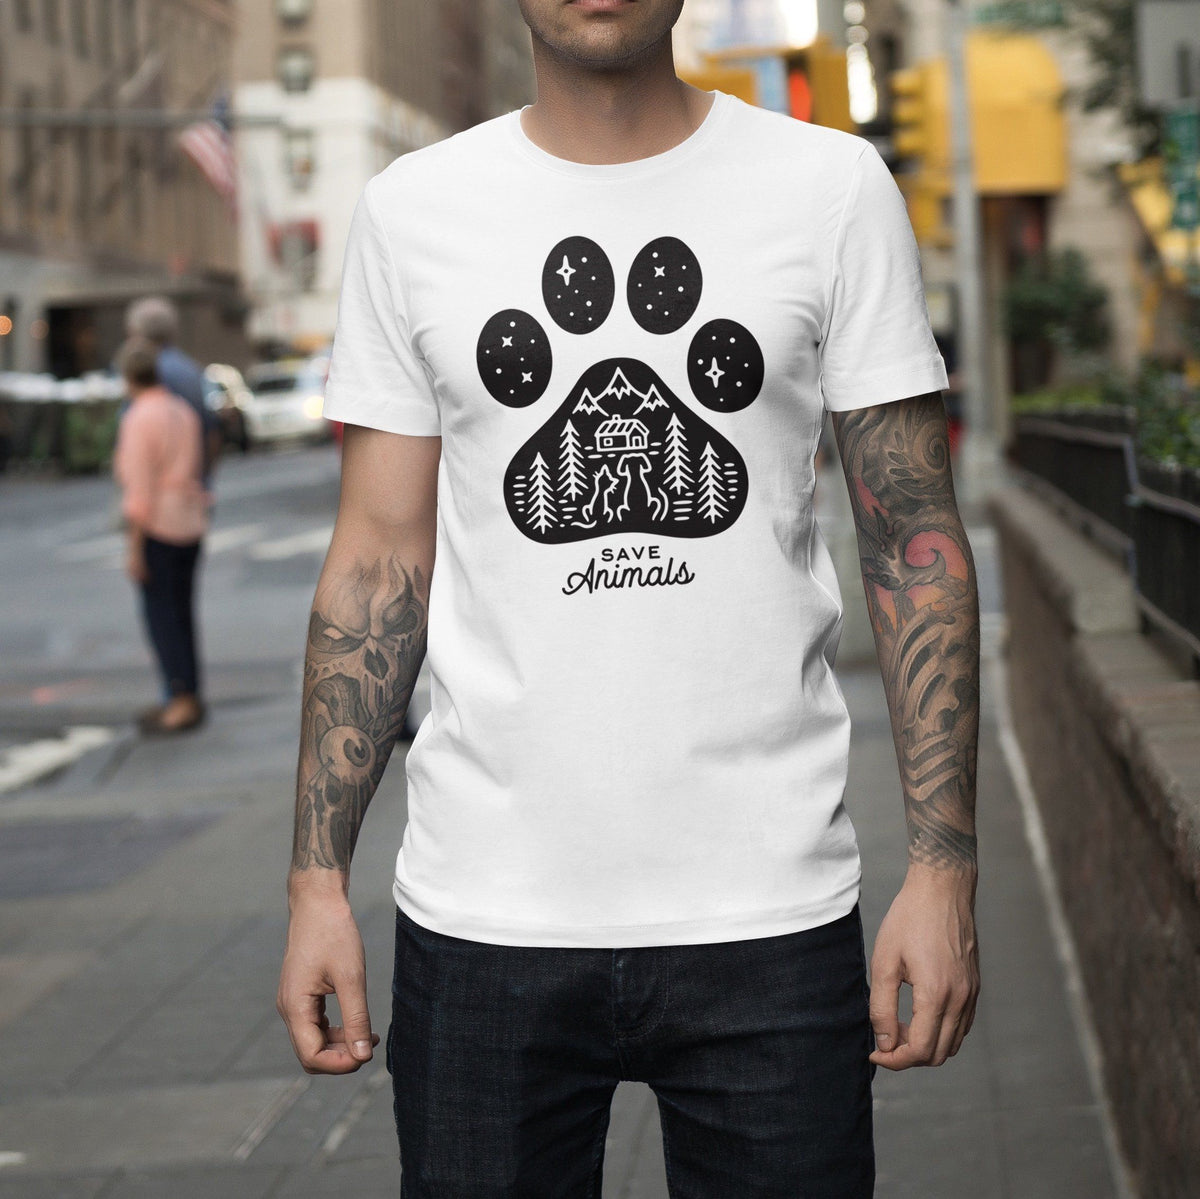 Save Animals T-Shirt